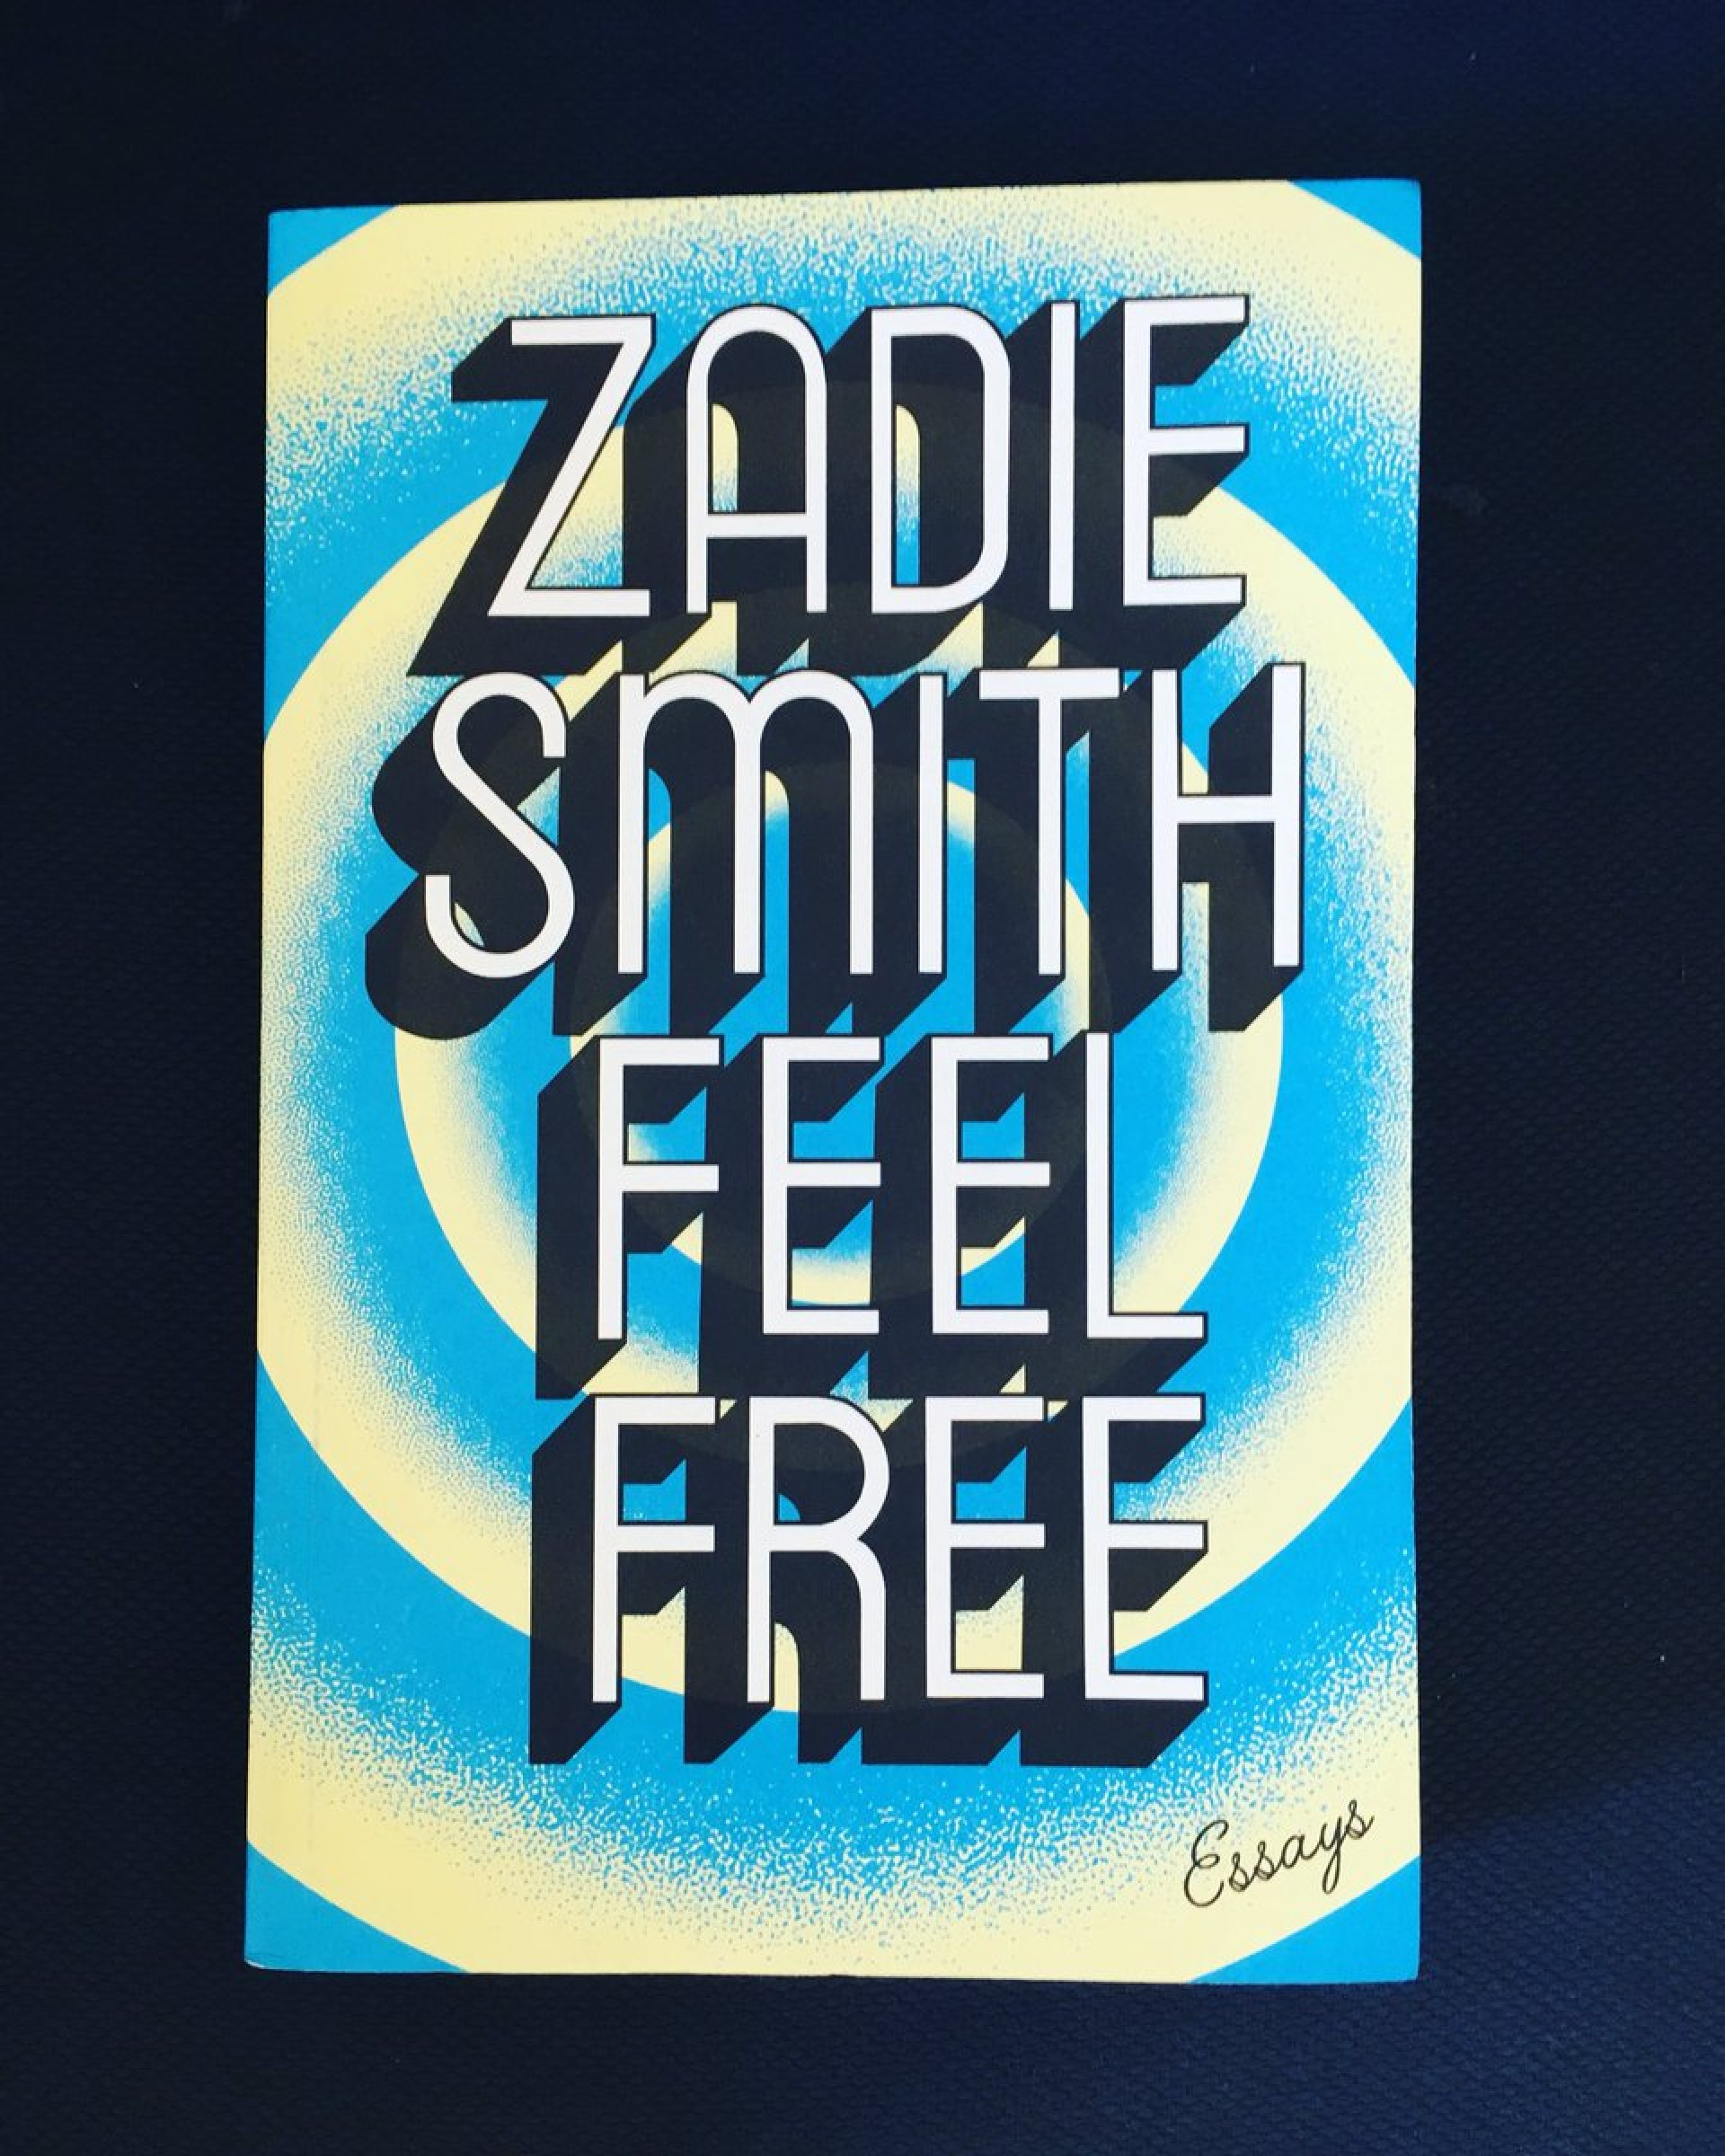 008 Dpy9unvx0aaidrv Essay Example Zadie Smith Wonderful Essays Amazon Radio 4 1920